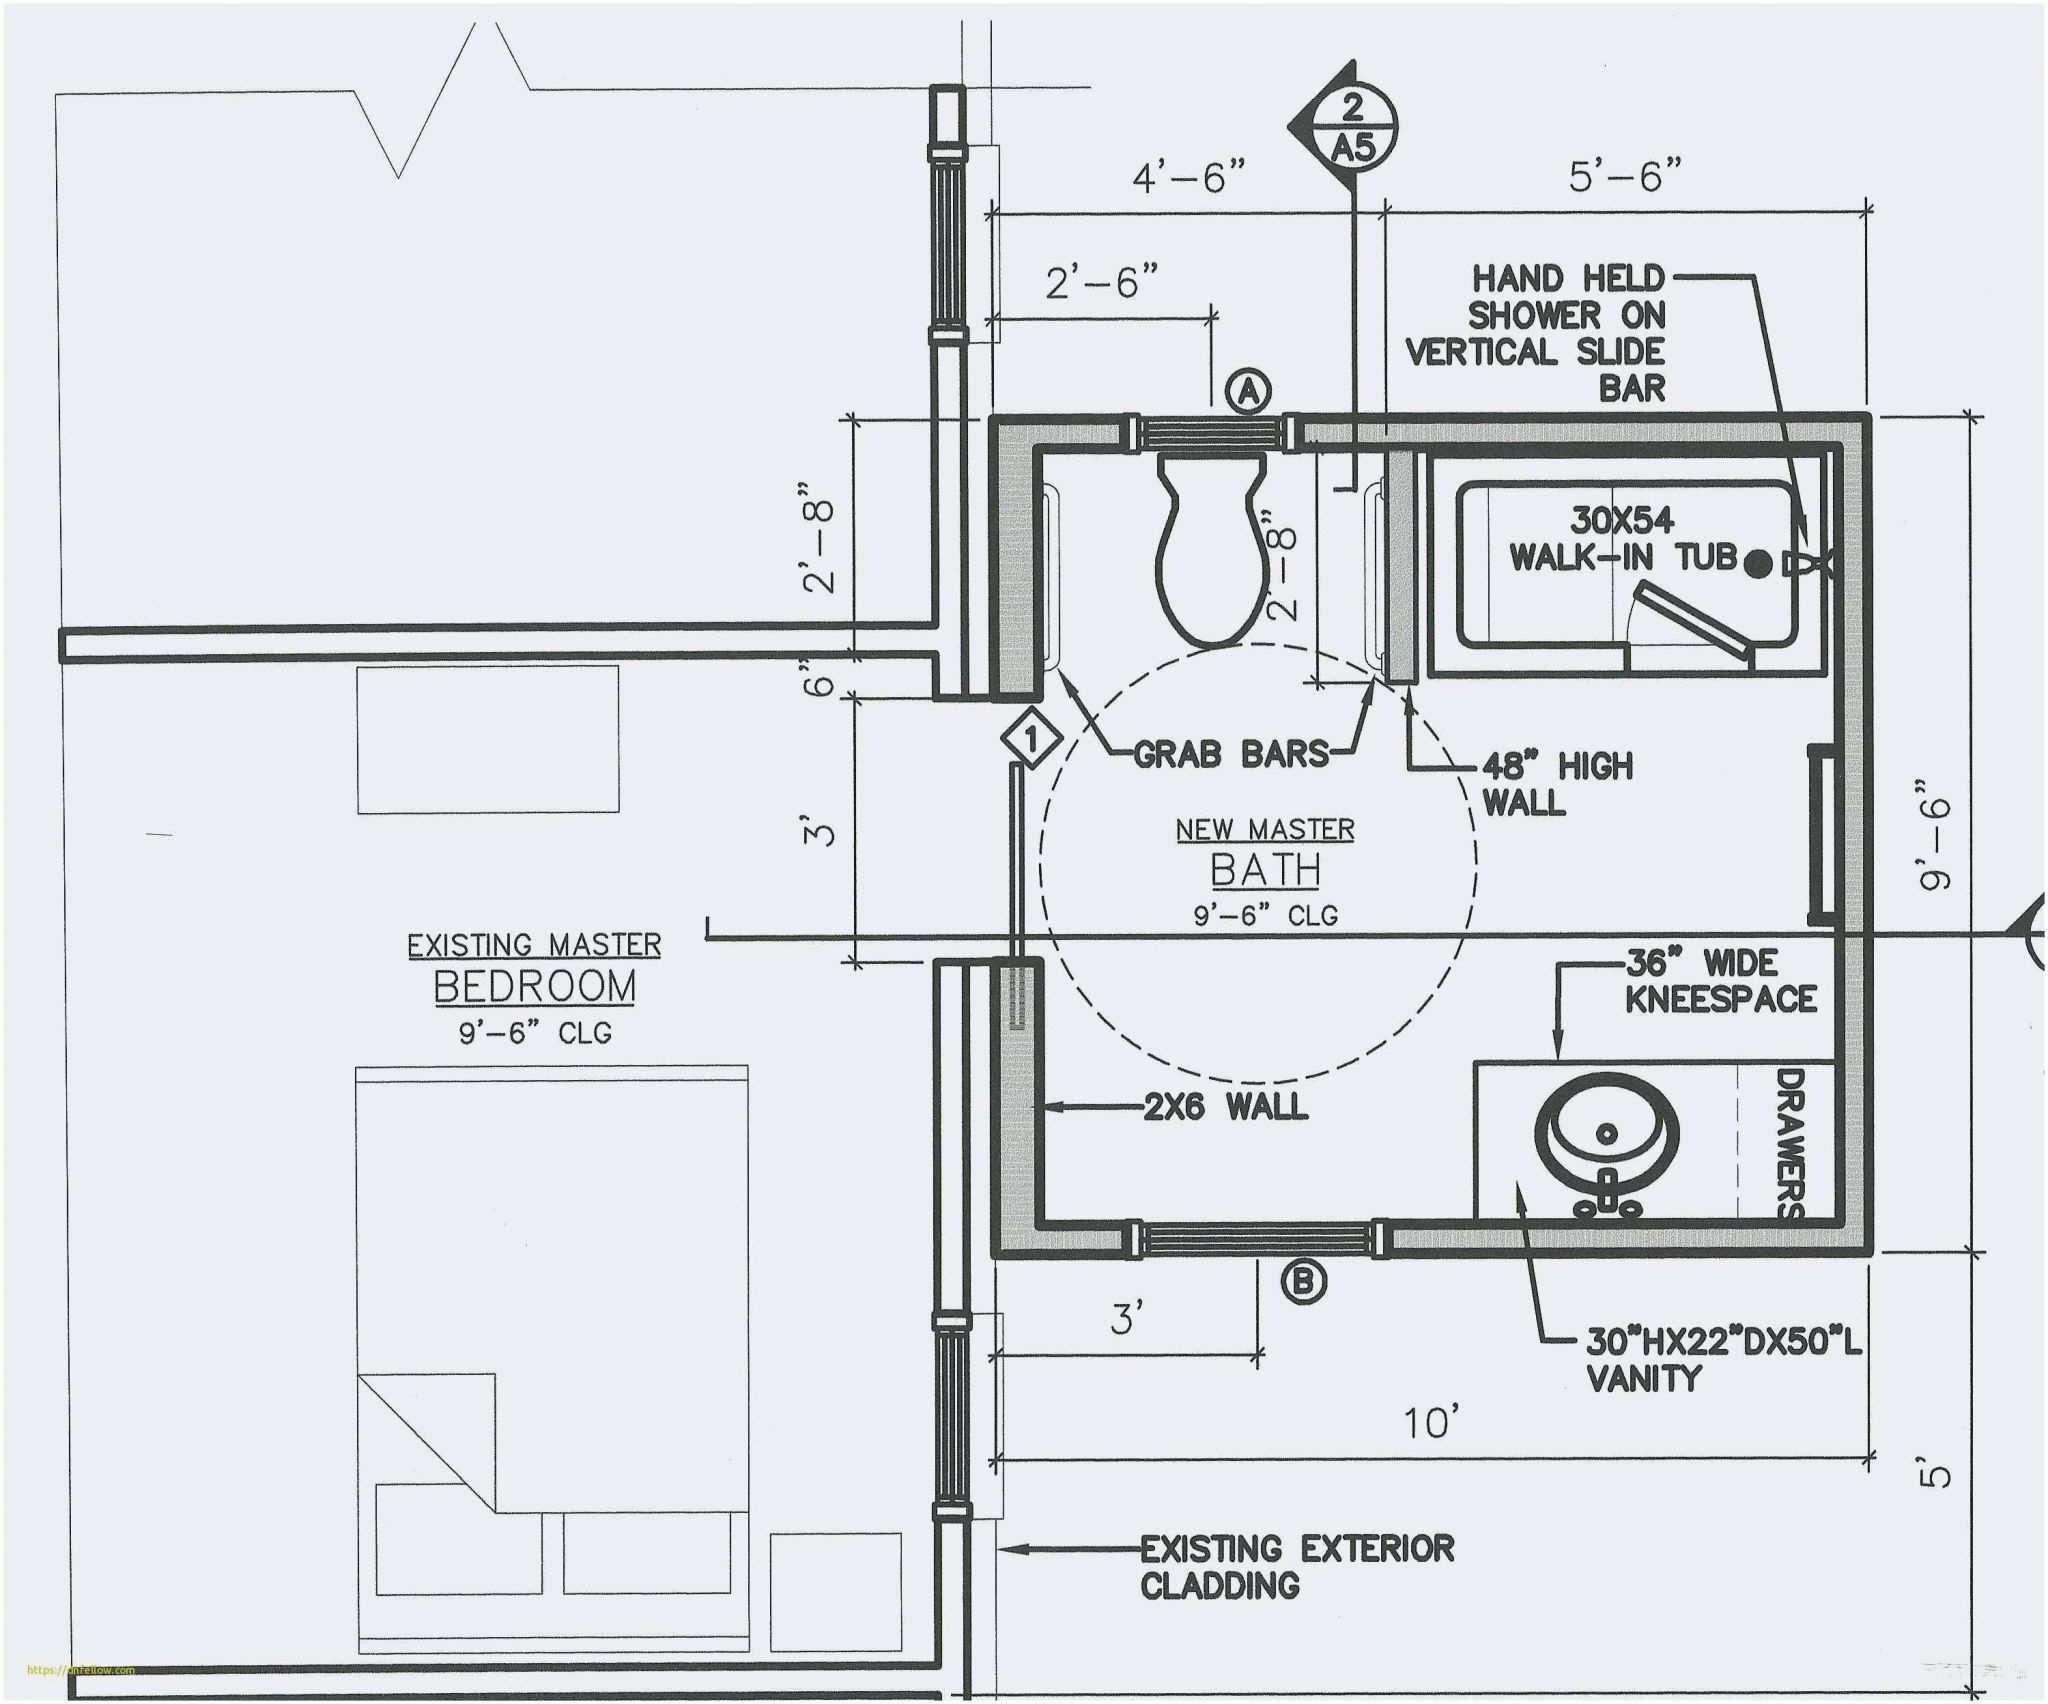 [MC_6327] Home Theater Line Diagram Plan Wiring Diagram